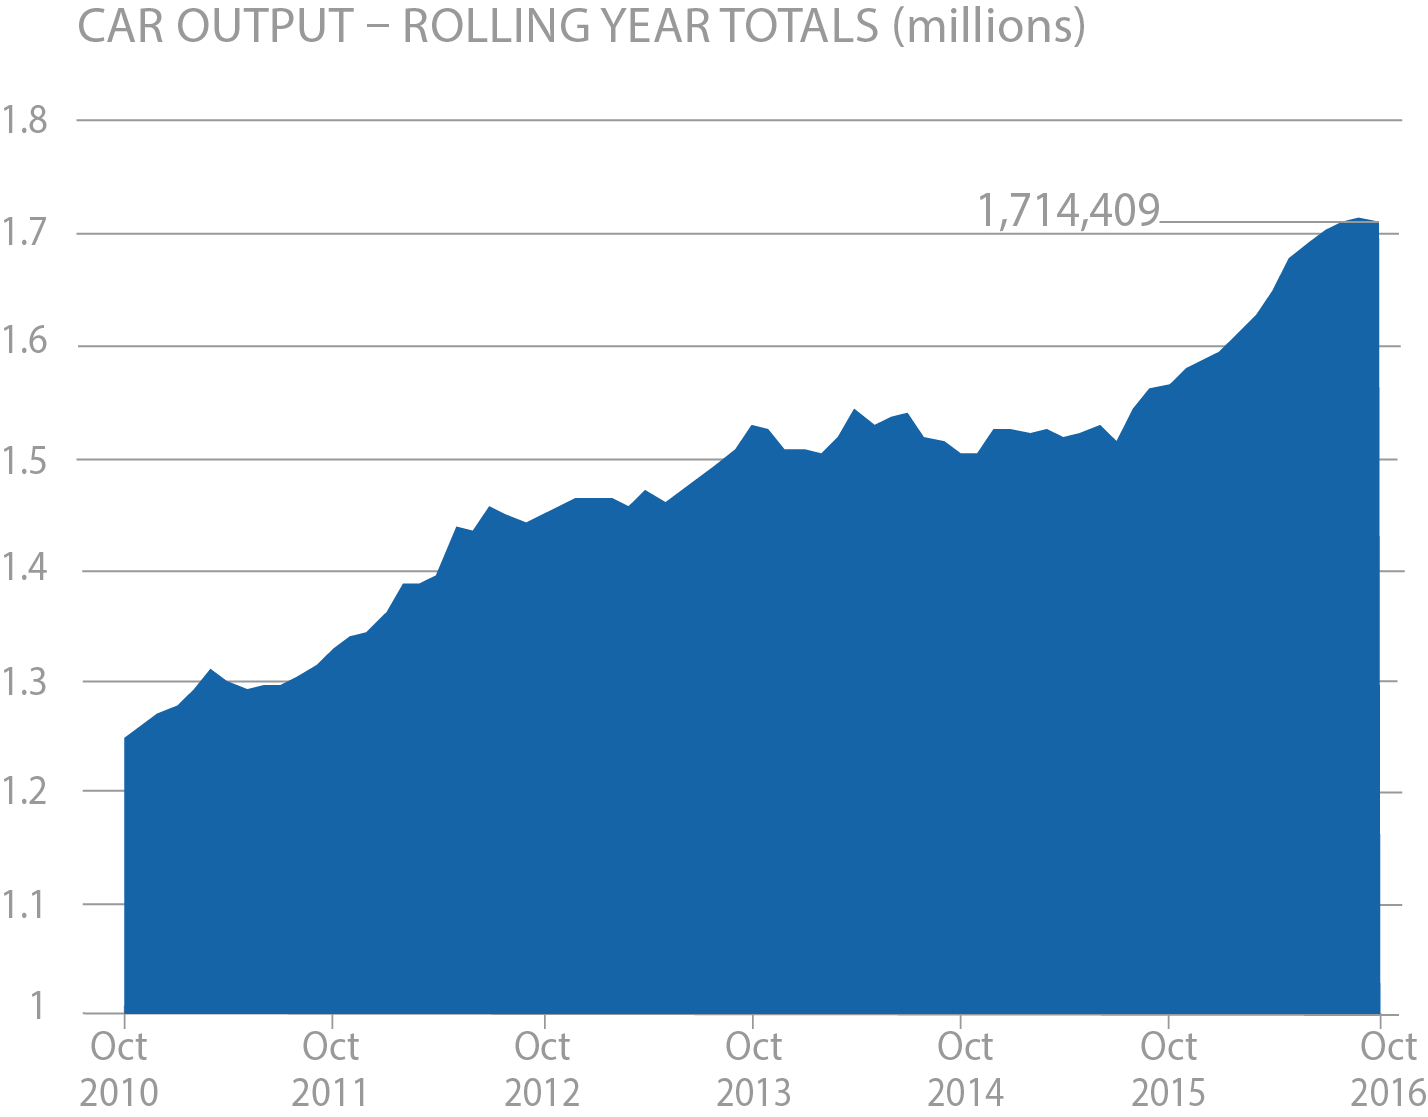 car-output_rolling-year-totals-october-2016